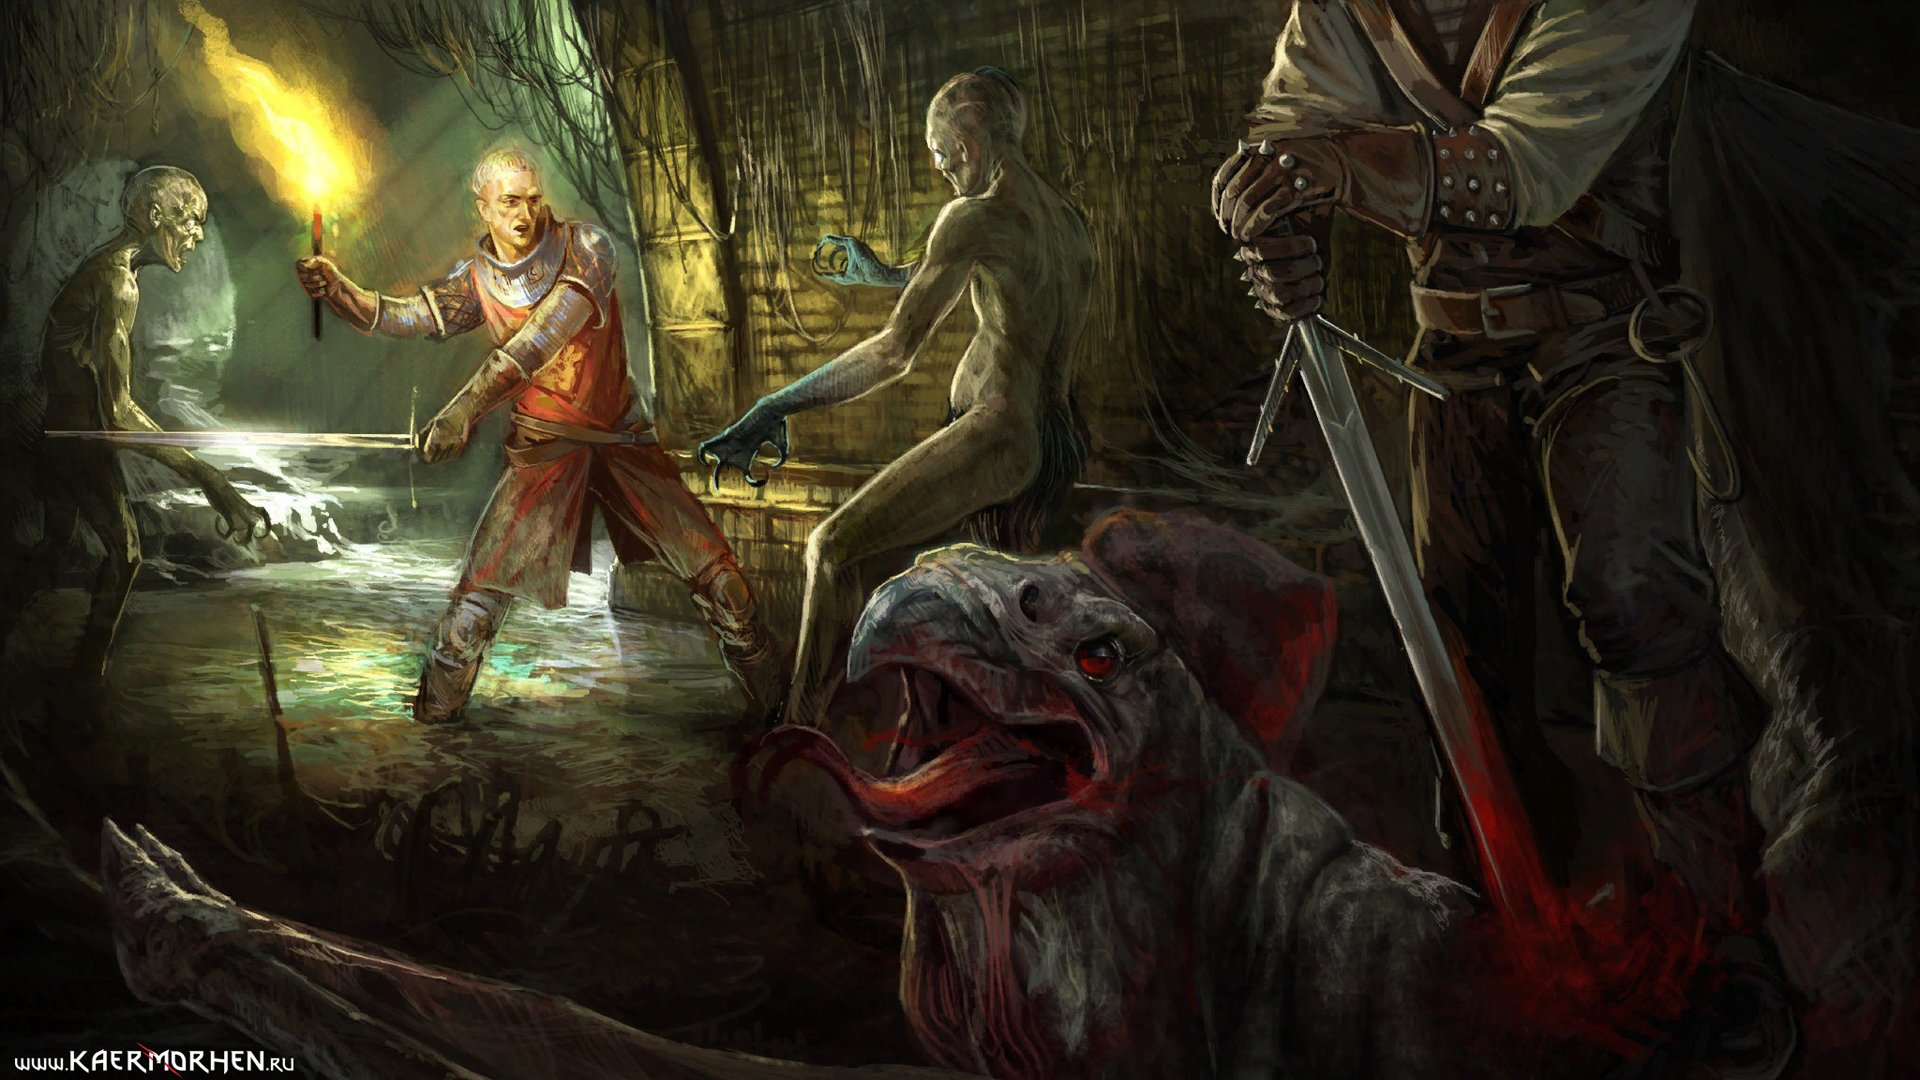 The Witcher Hd Wallpaper  Background Image  1920X1080  Id492935 - Wallpaper Abyss-6978